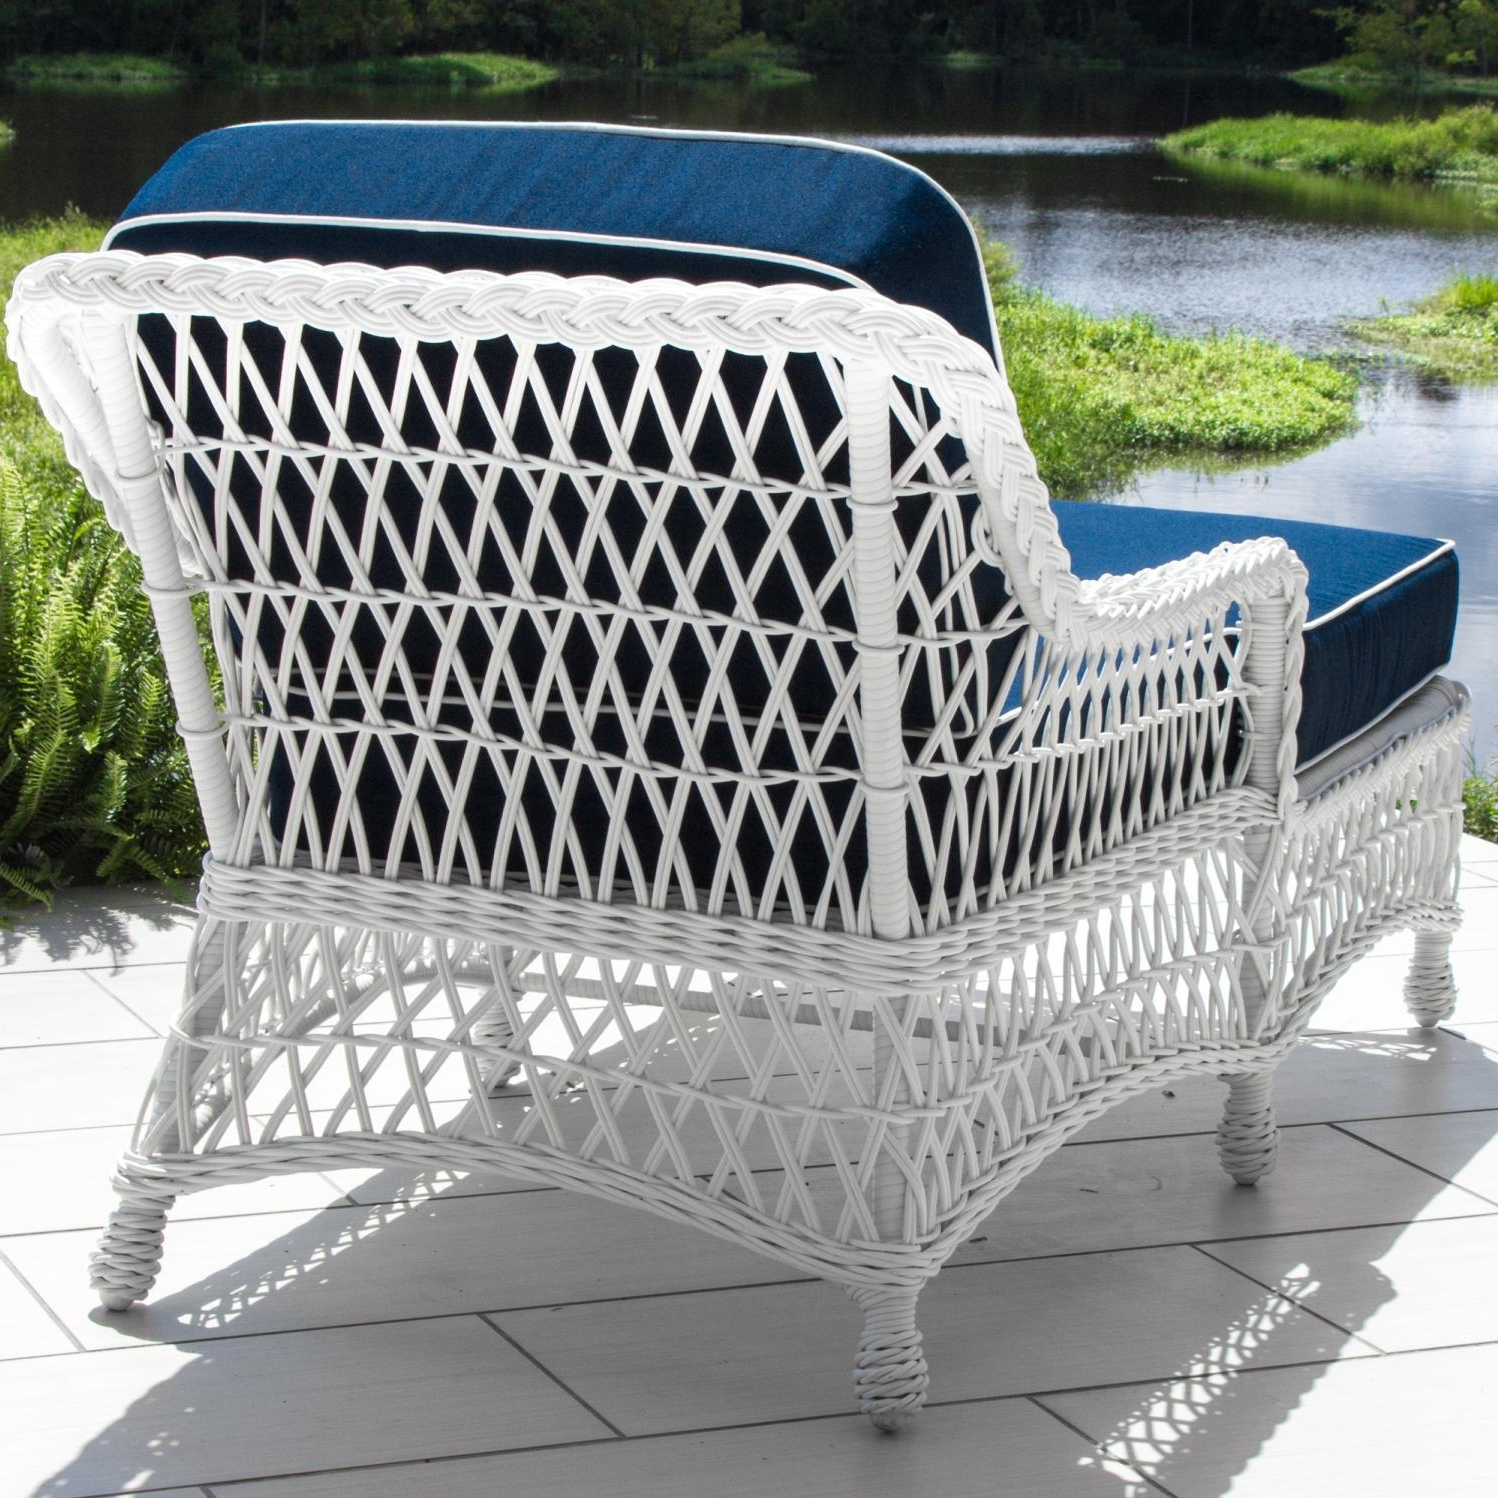 Everglades White Resin Wicker Patio Chaise Loungelakeview Intended For Well Known White Wicker Chaise Lounges (View 13 of 15)